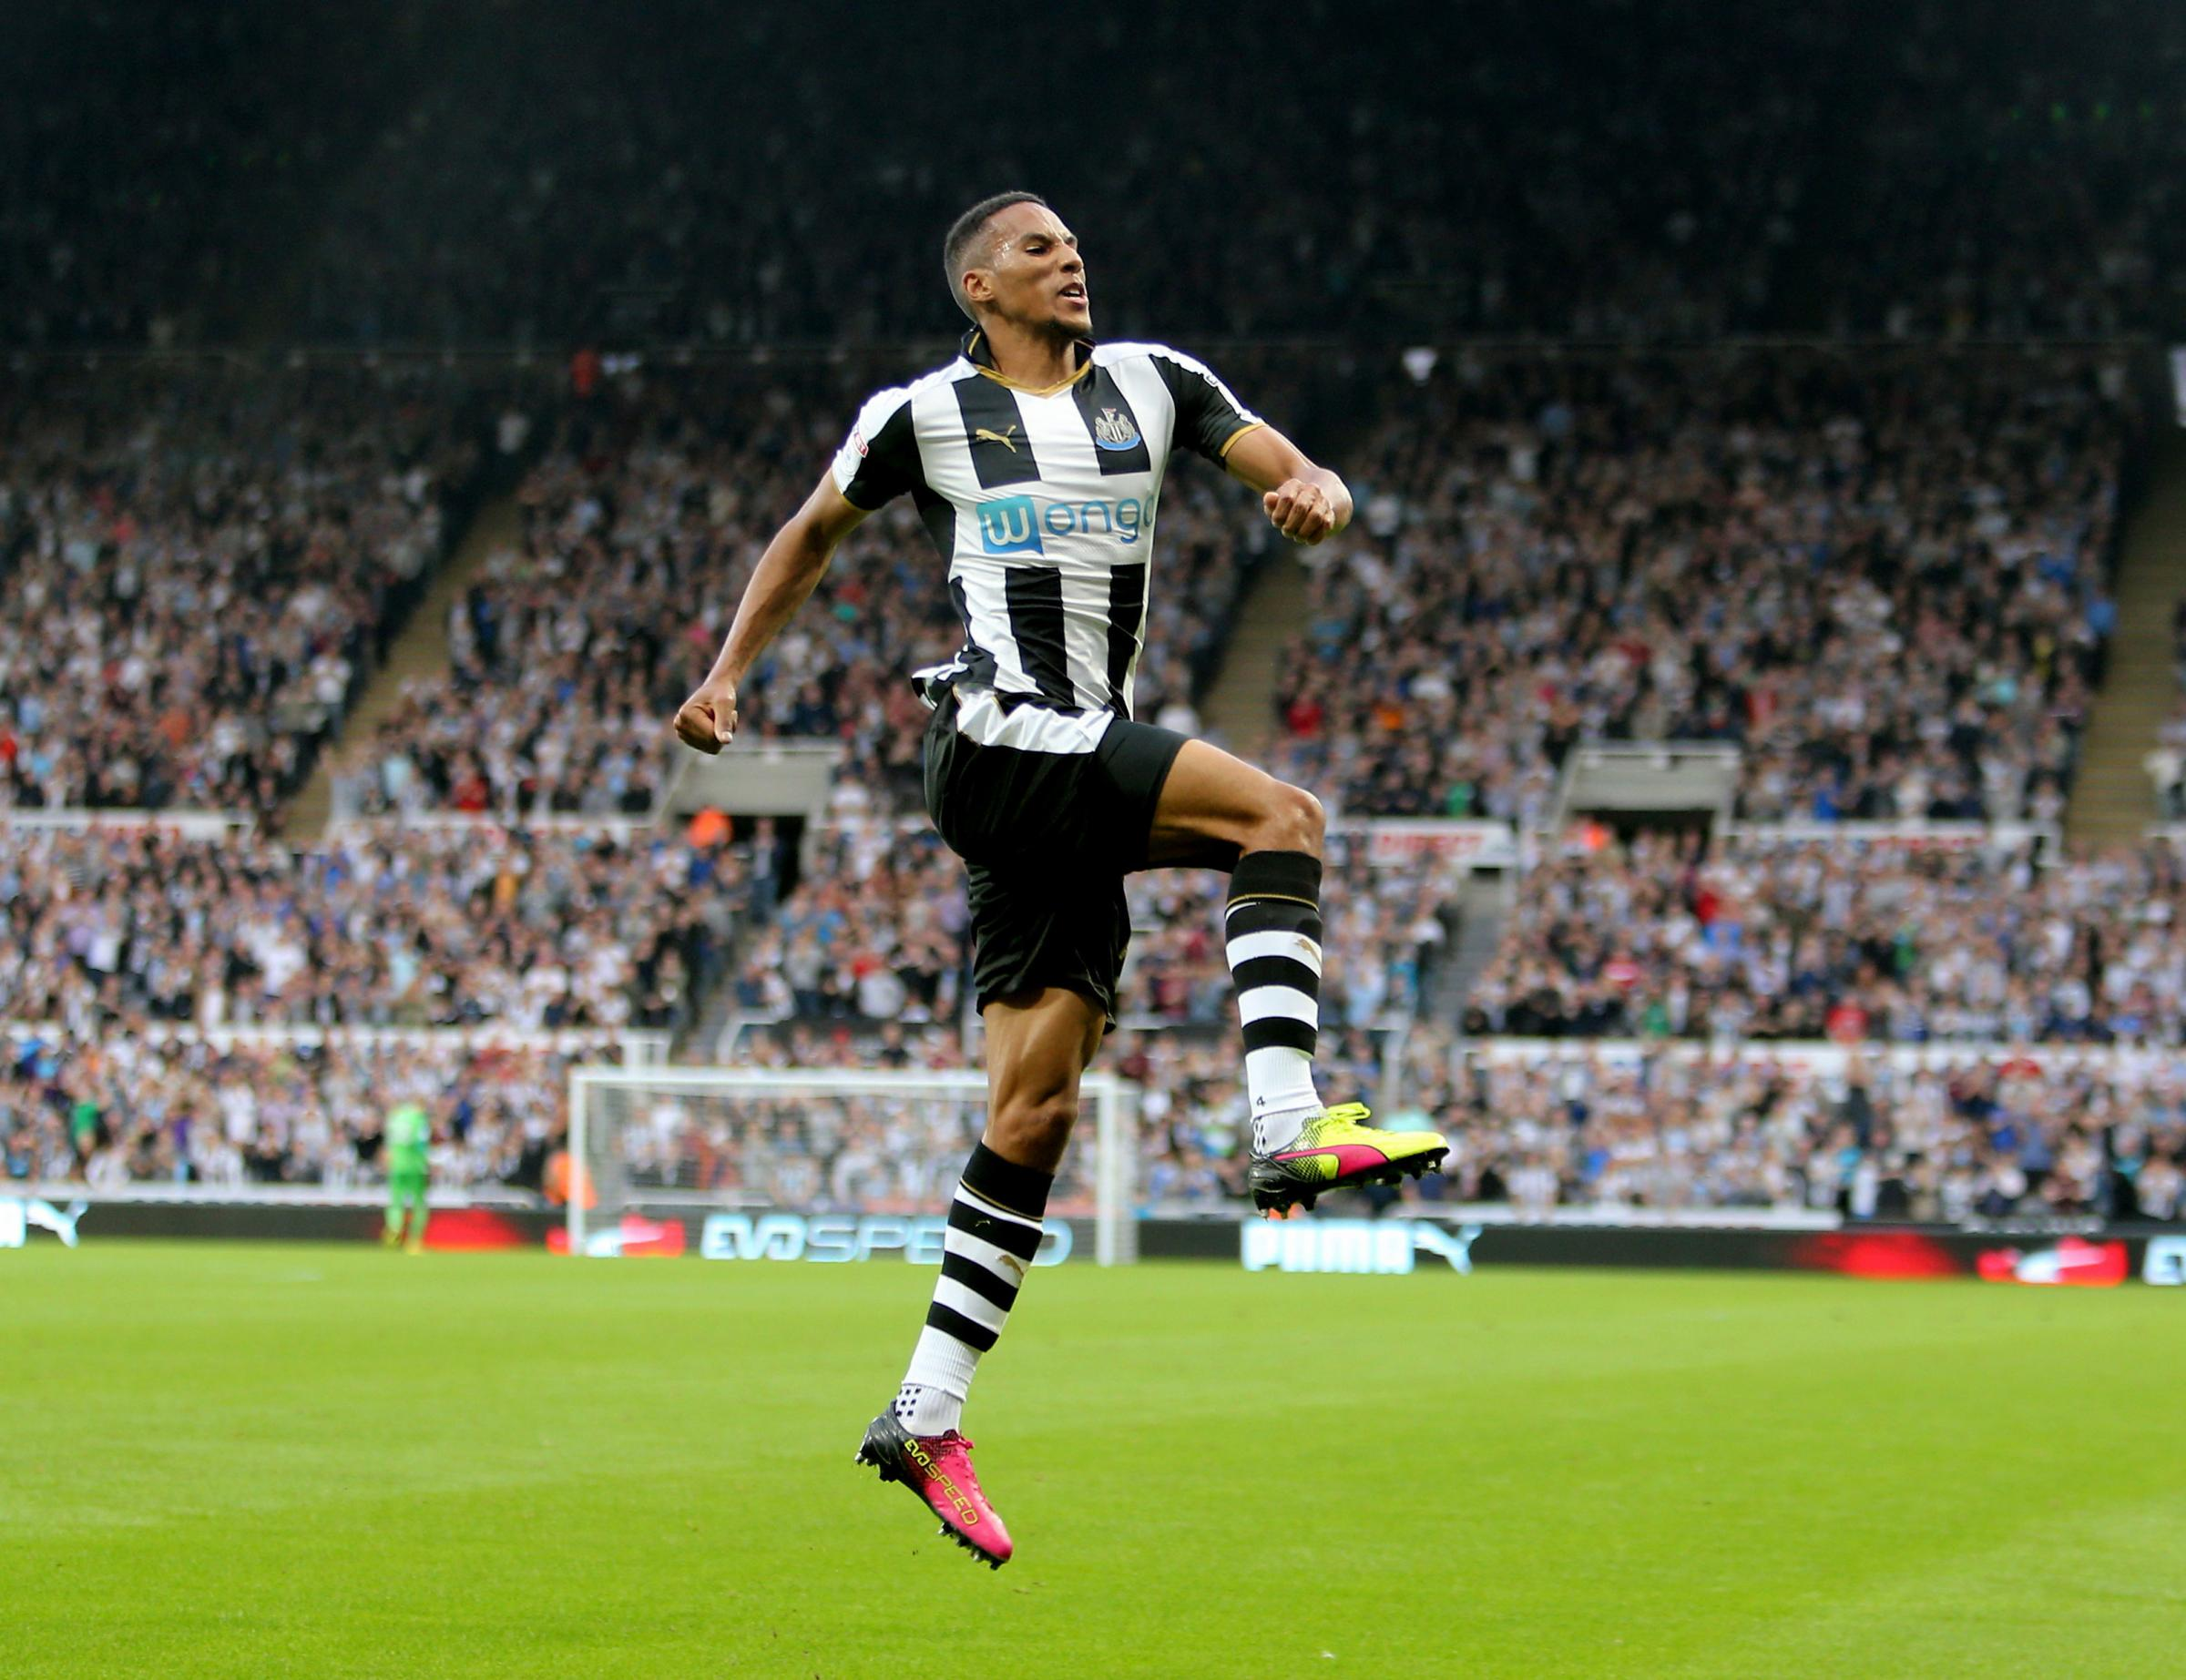 TRANSFER REQUEST: Isaac Hayden wants to leave Newcastle this summer because of family reasons